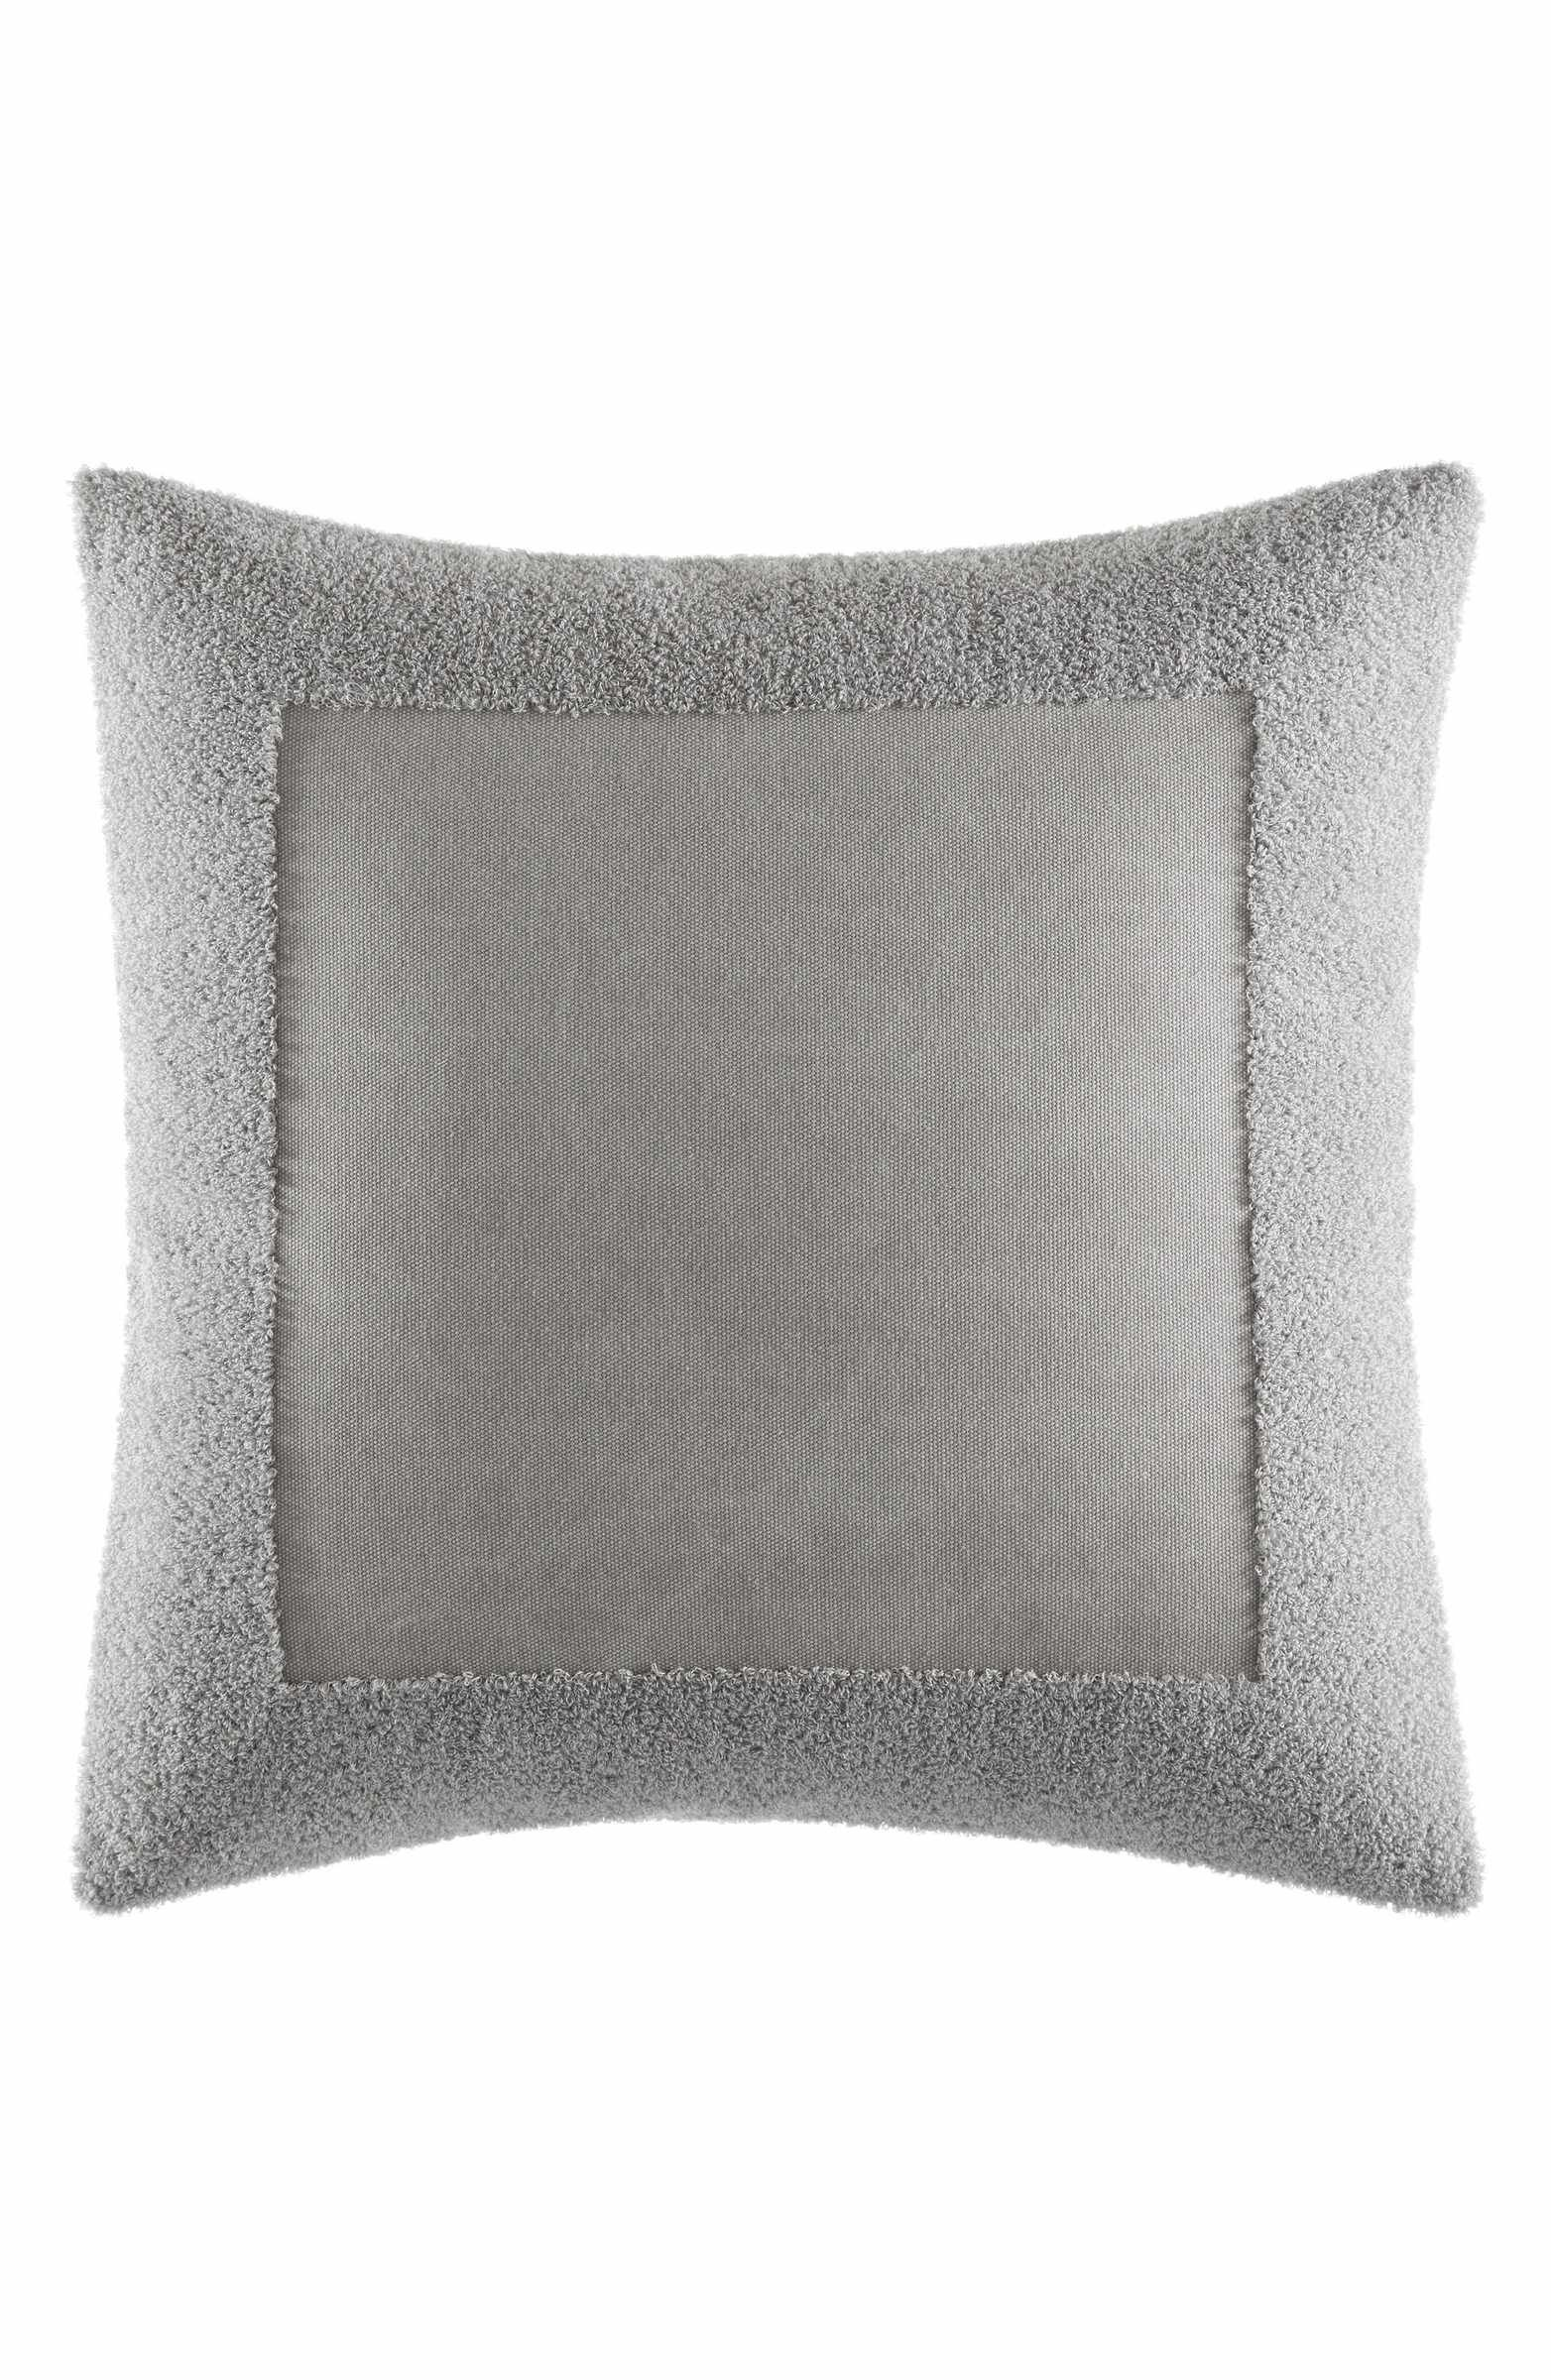 Vera Wang Transparent Leaves Accent Pillow Nordstrom Pillows Accent Pillows Decorative Pillows